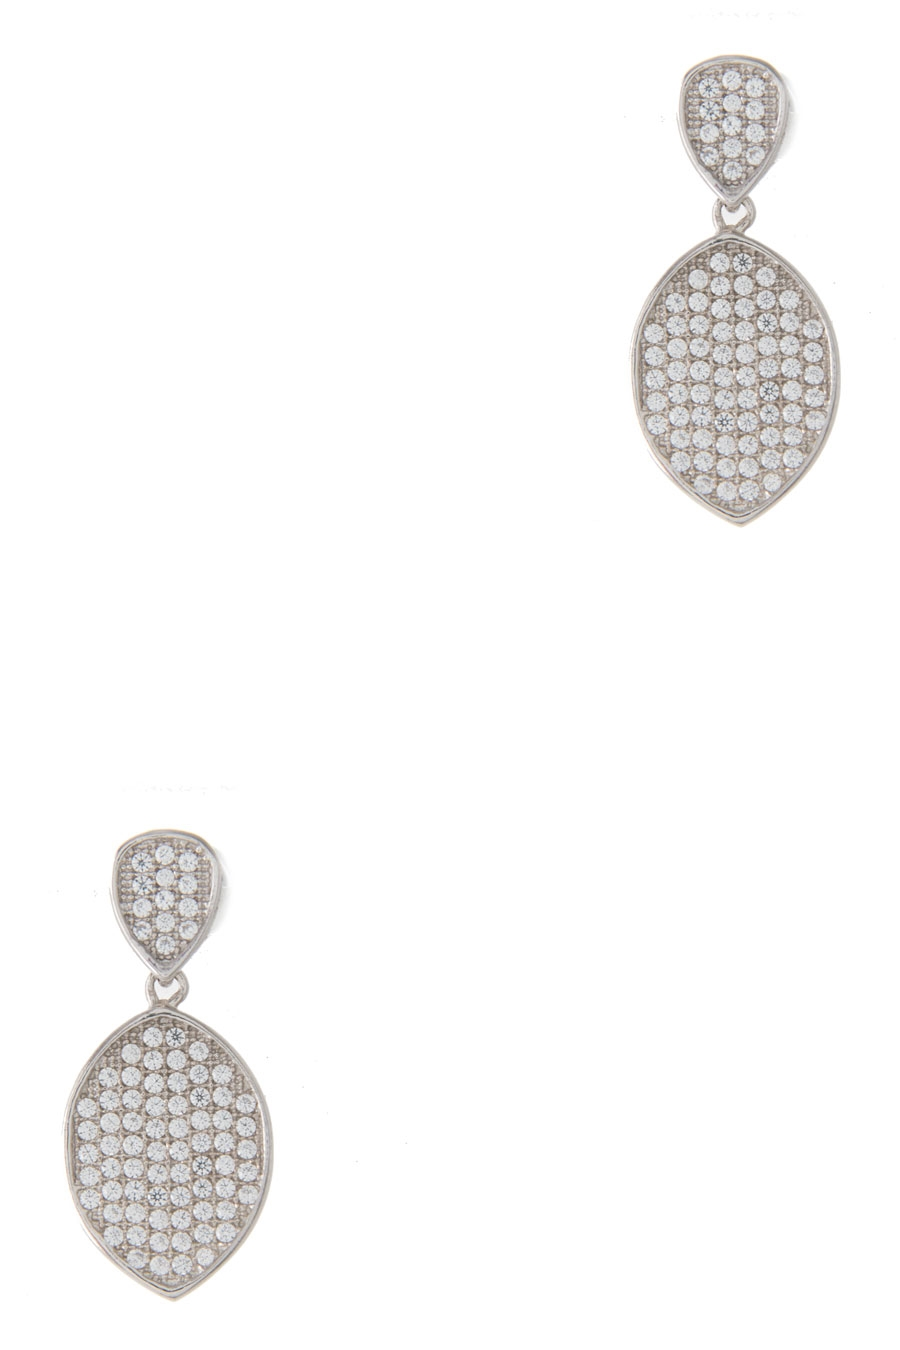 CRYSTAL PAVE DANGLE EARRING - orangeshine.com